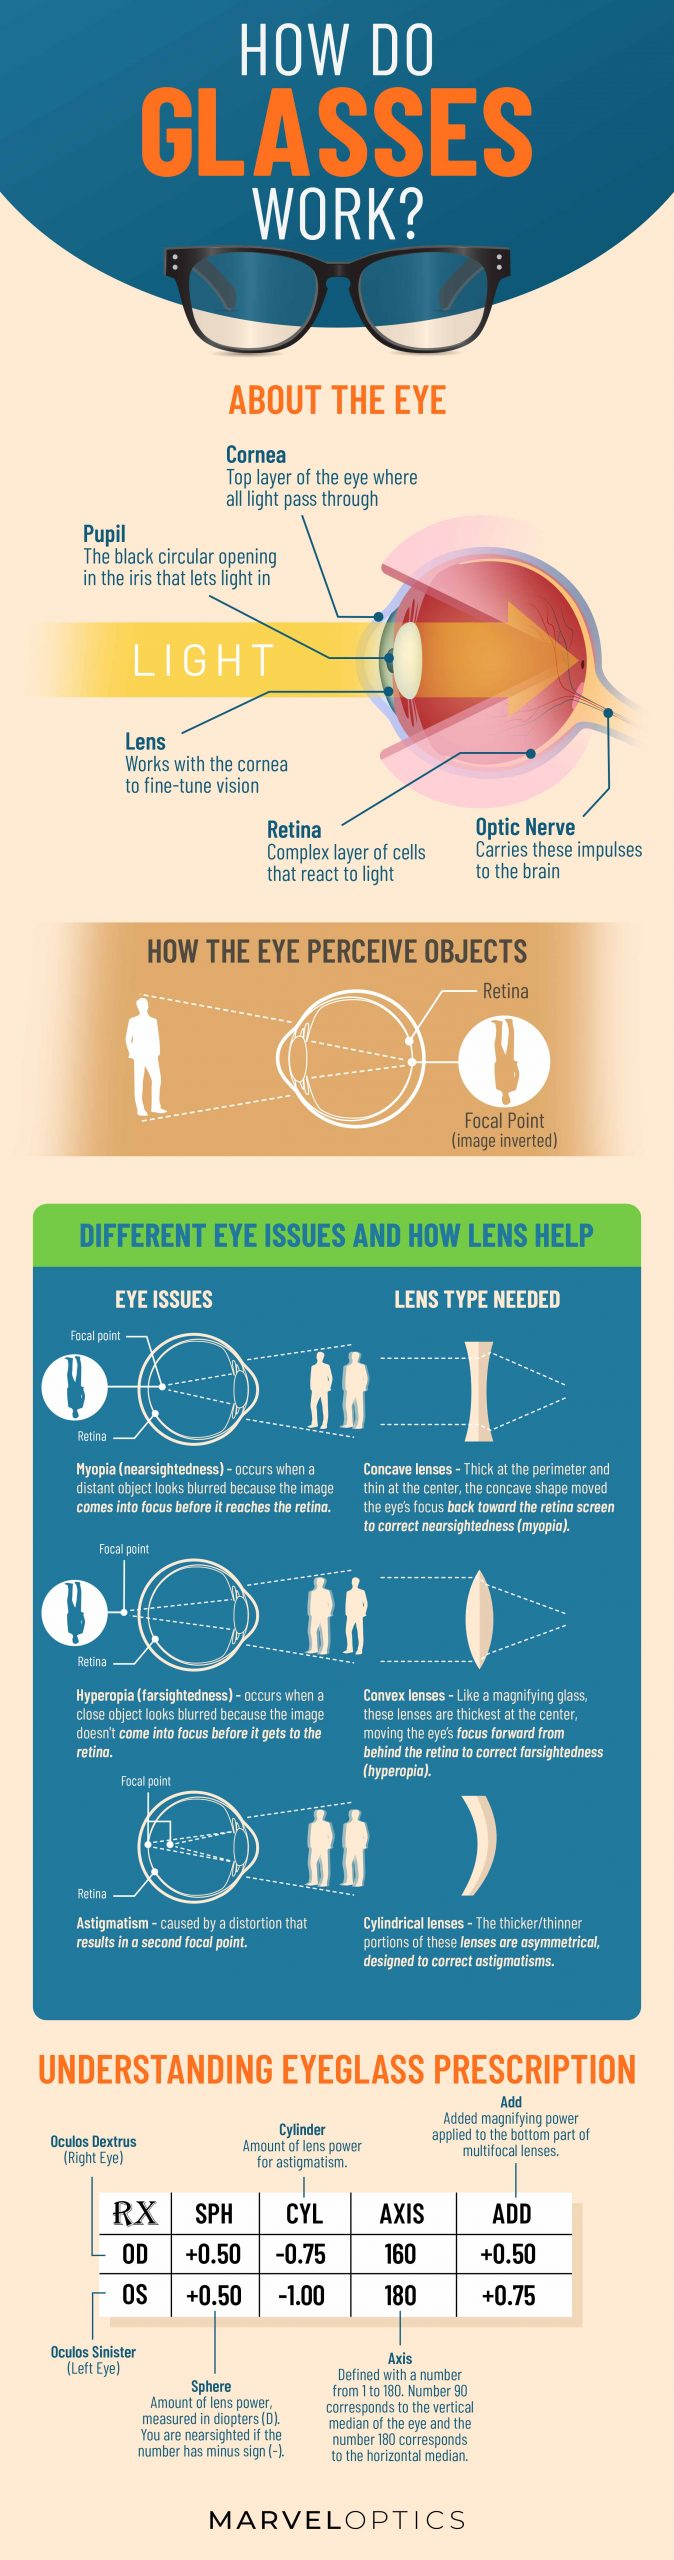 How Glasses Work Infographic